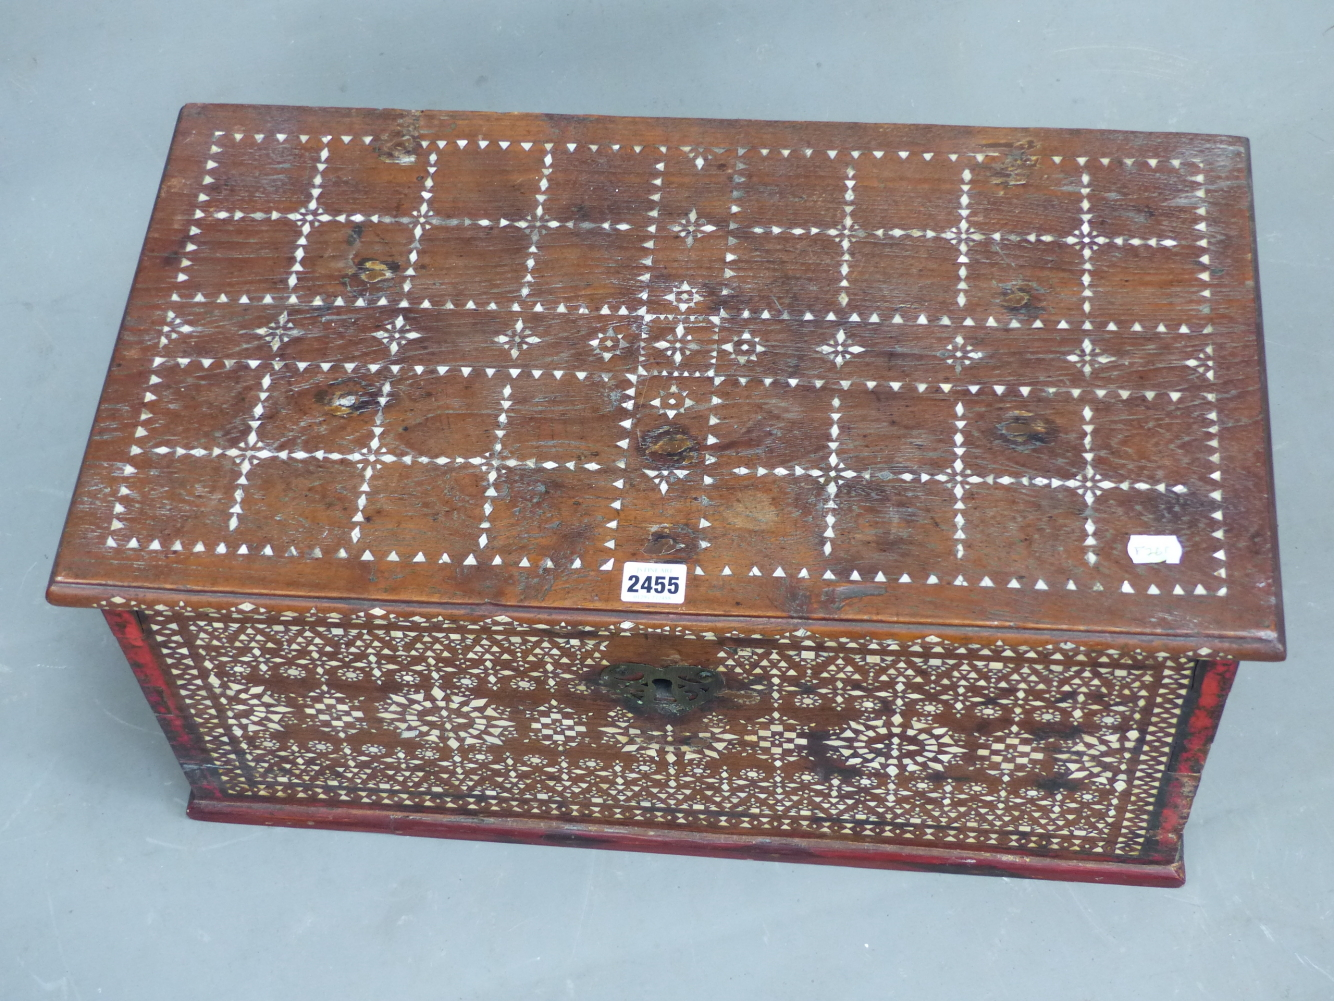 Lot 2455 - AN ISLAMIC HARDWOOD BOX, THE RECTANGULAR HINGED LID INLAID WITH A CHEQUERBOARD OF MOTHER OF PEARL. W